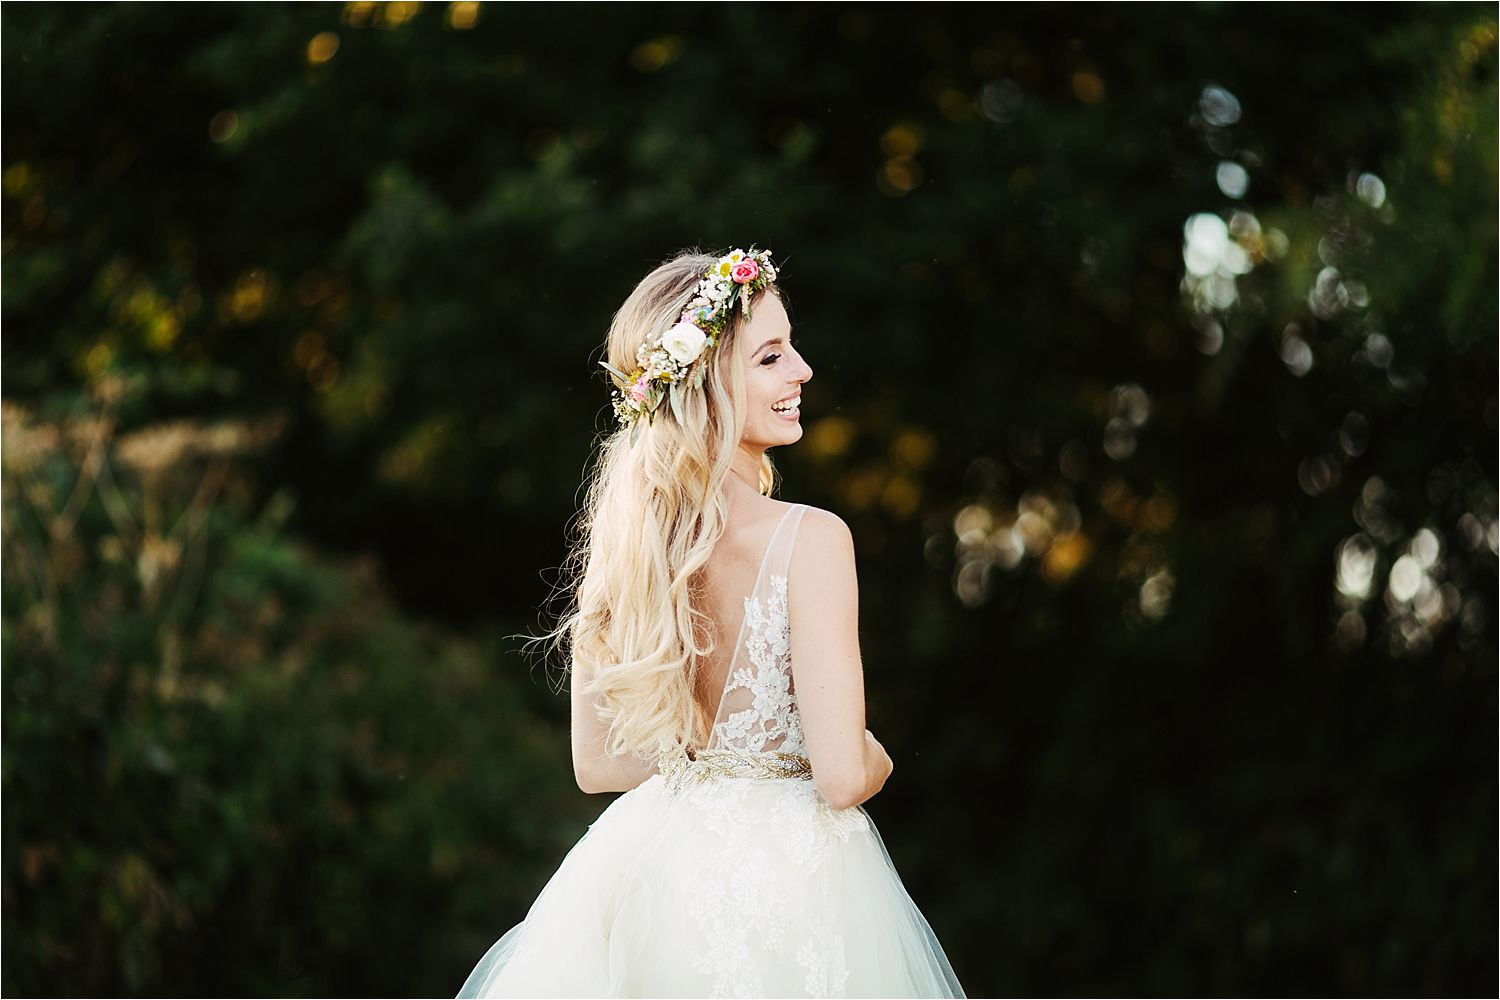 Bride wearing xxxx Wedding dress, floral headress by Green Earth Flowers of Cheshire. Dress by Lazarro